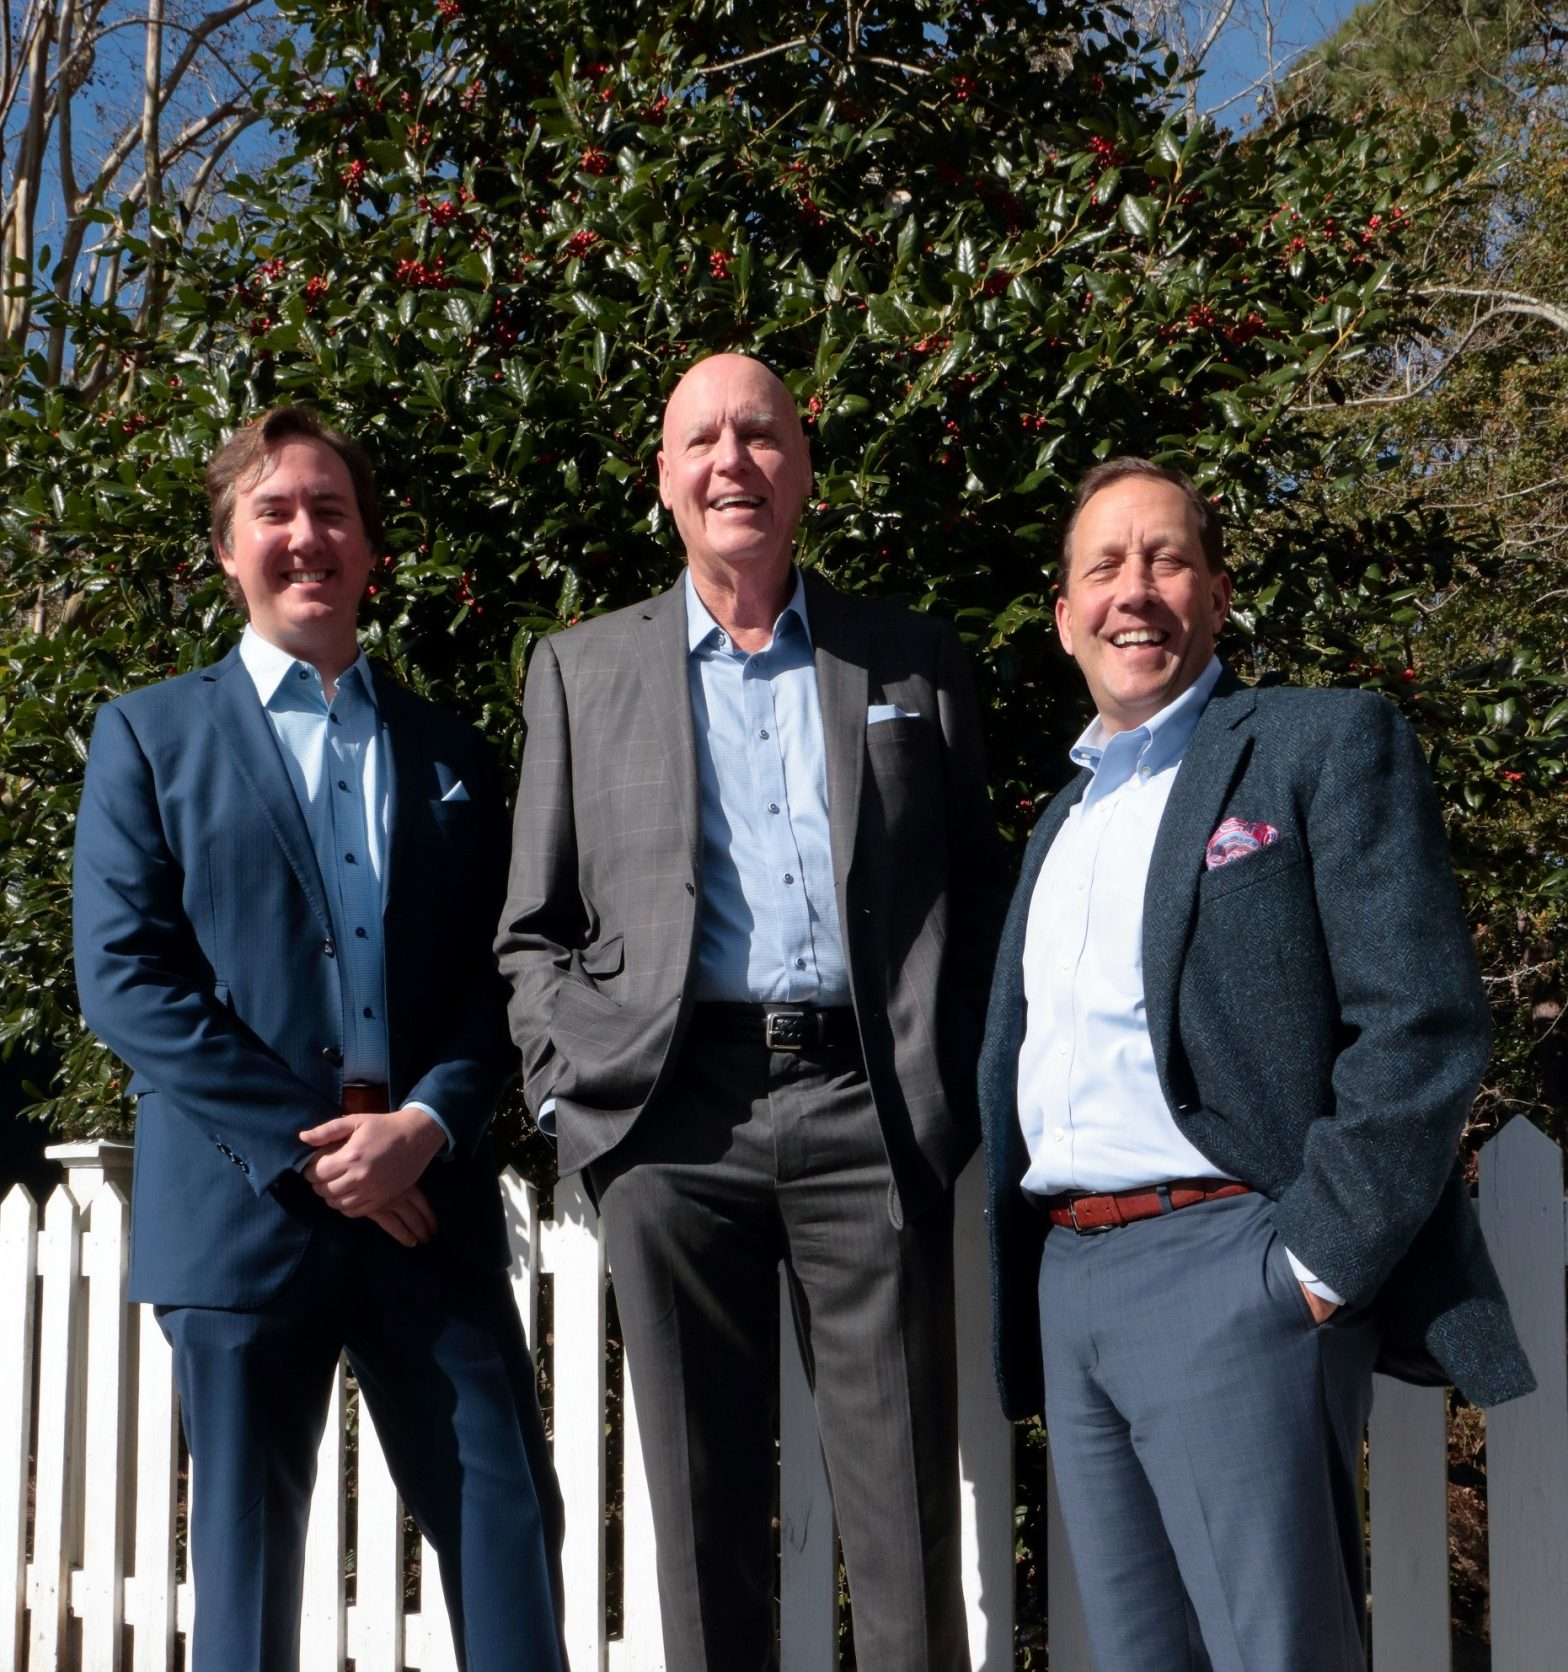 Bald Head Island Limited Sells Real Estate Sales and Vacation Rental Businesses to Intracoastal Realty